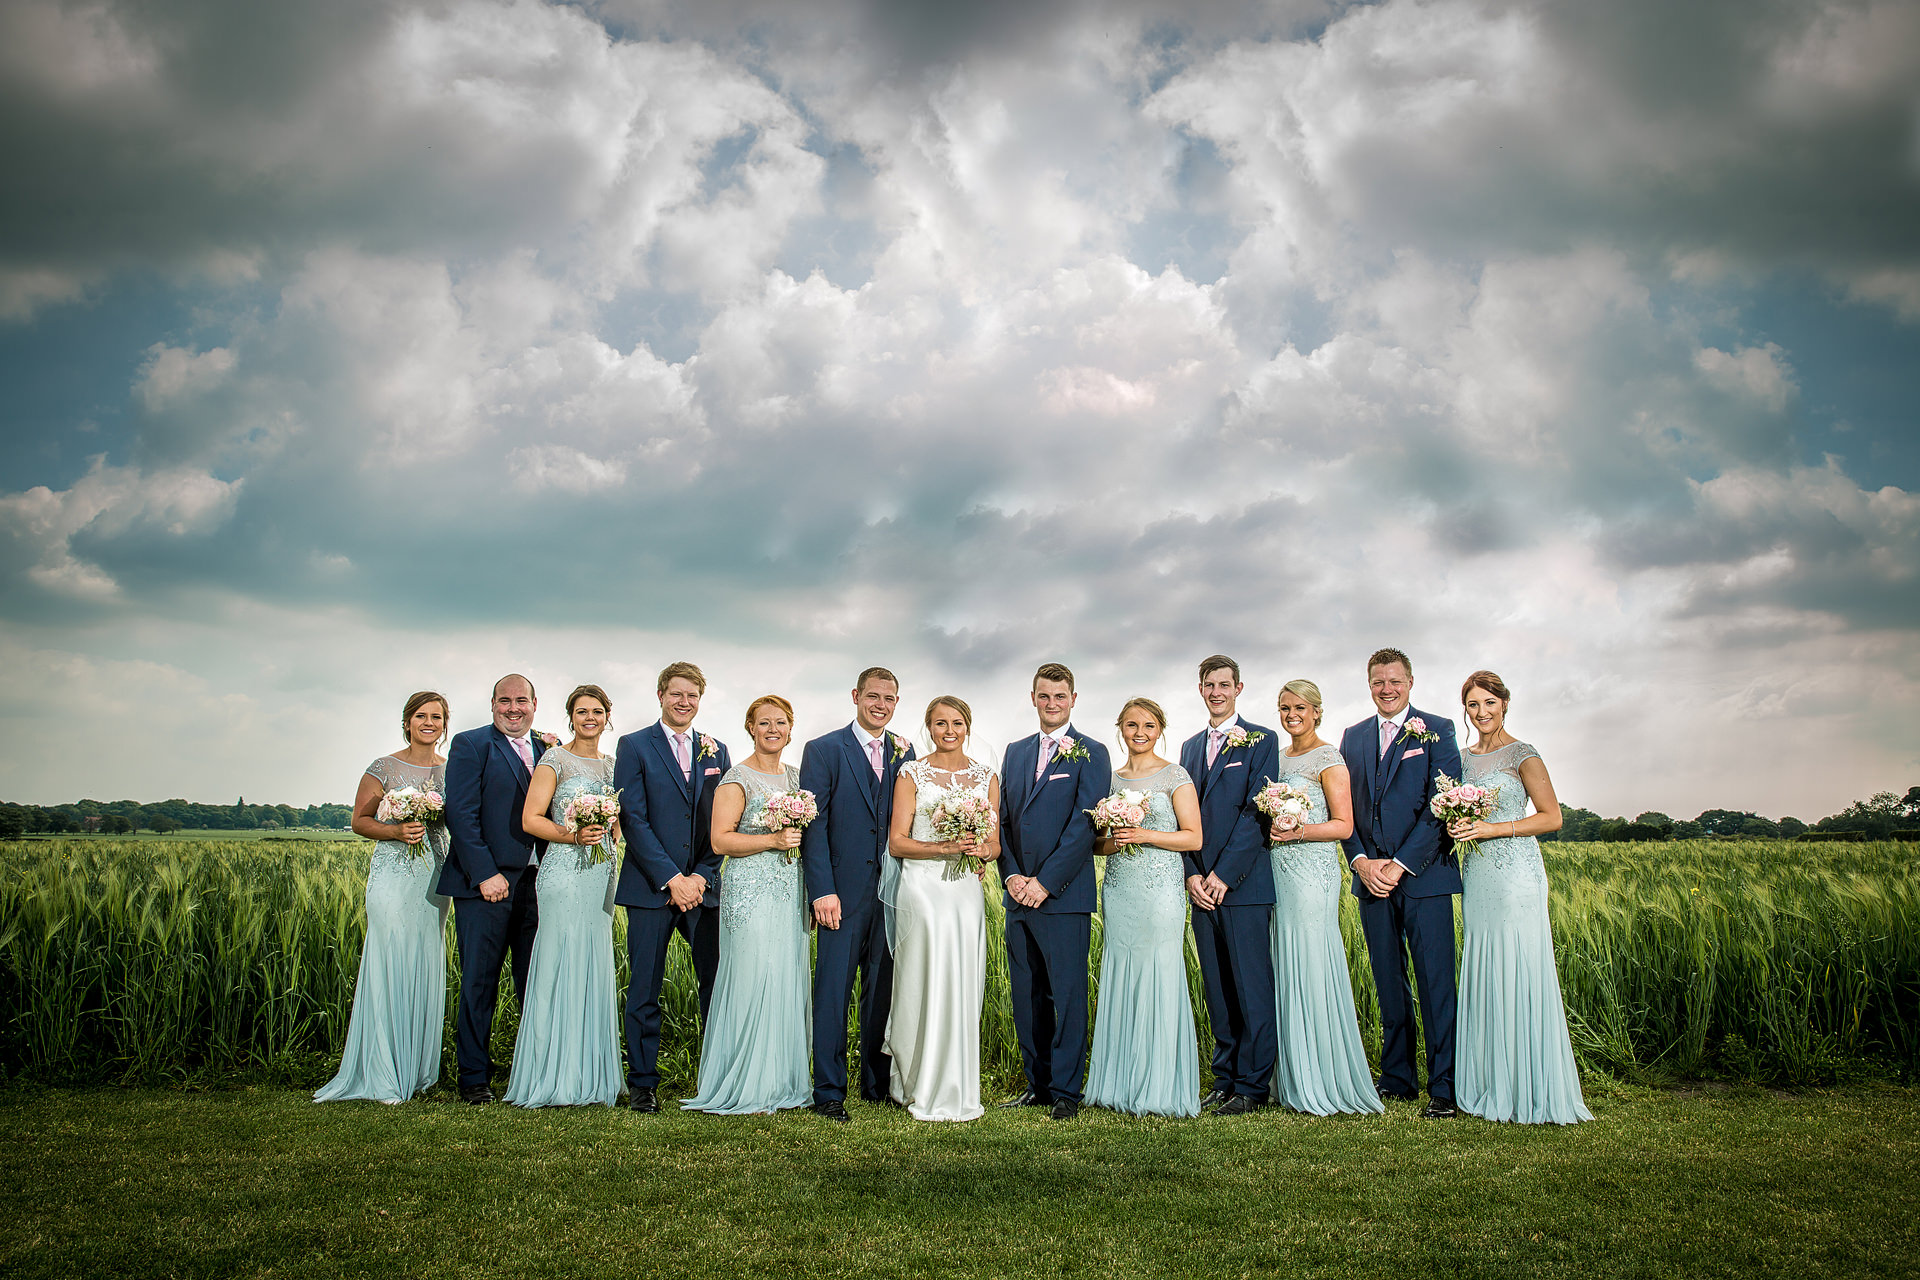 Bridal party group shot